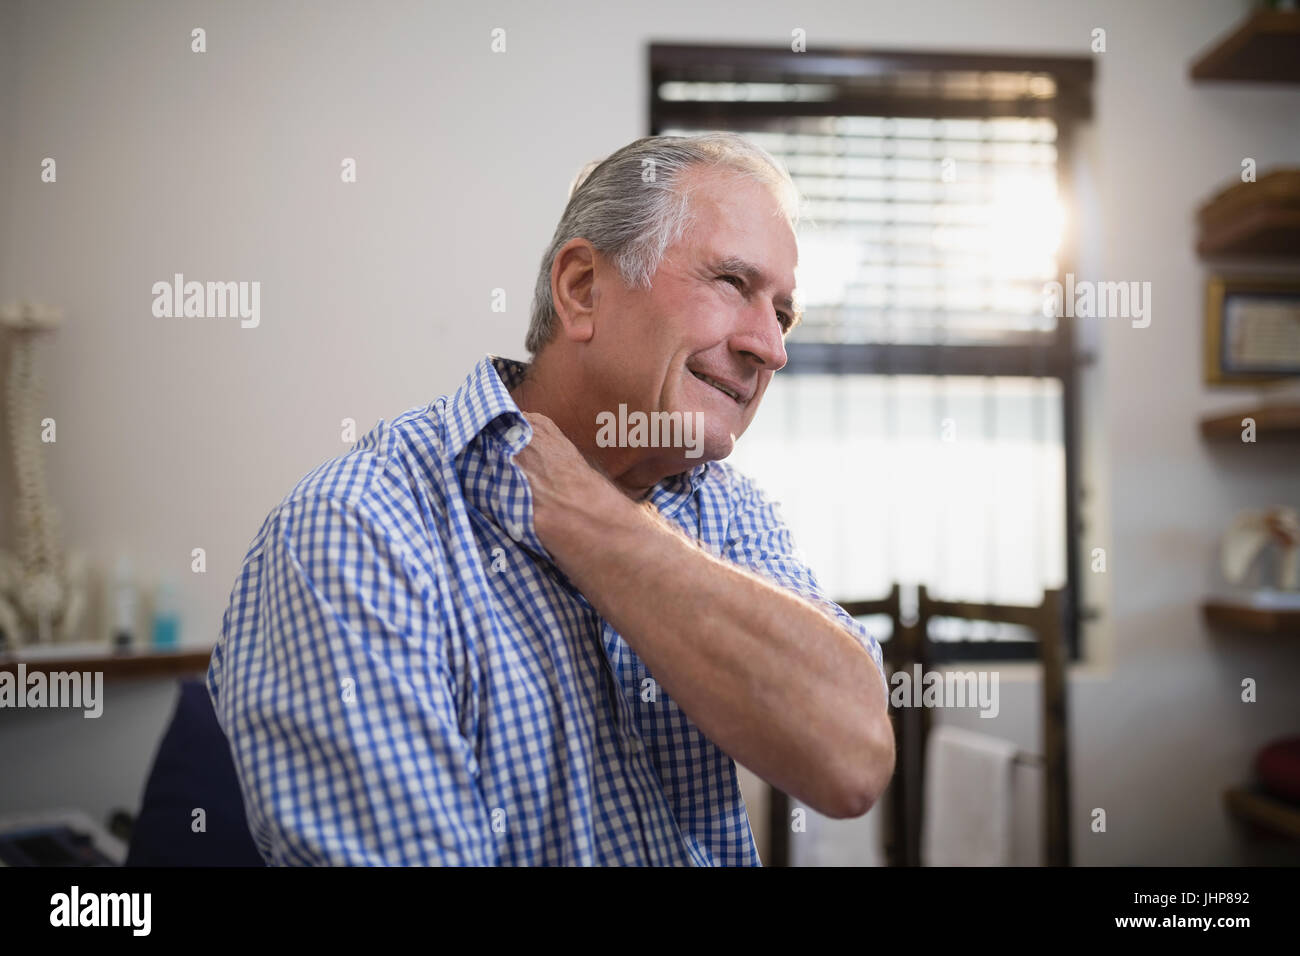 Senior male patient grimacing with neck pain at hospital ward - Stock Image